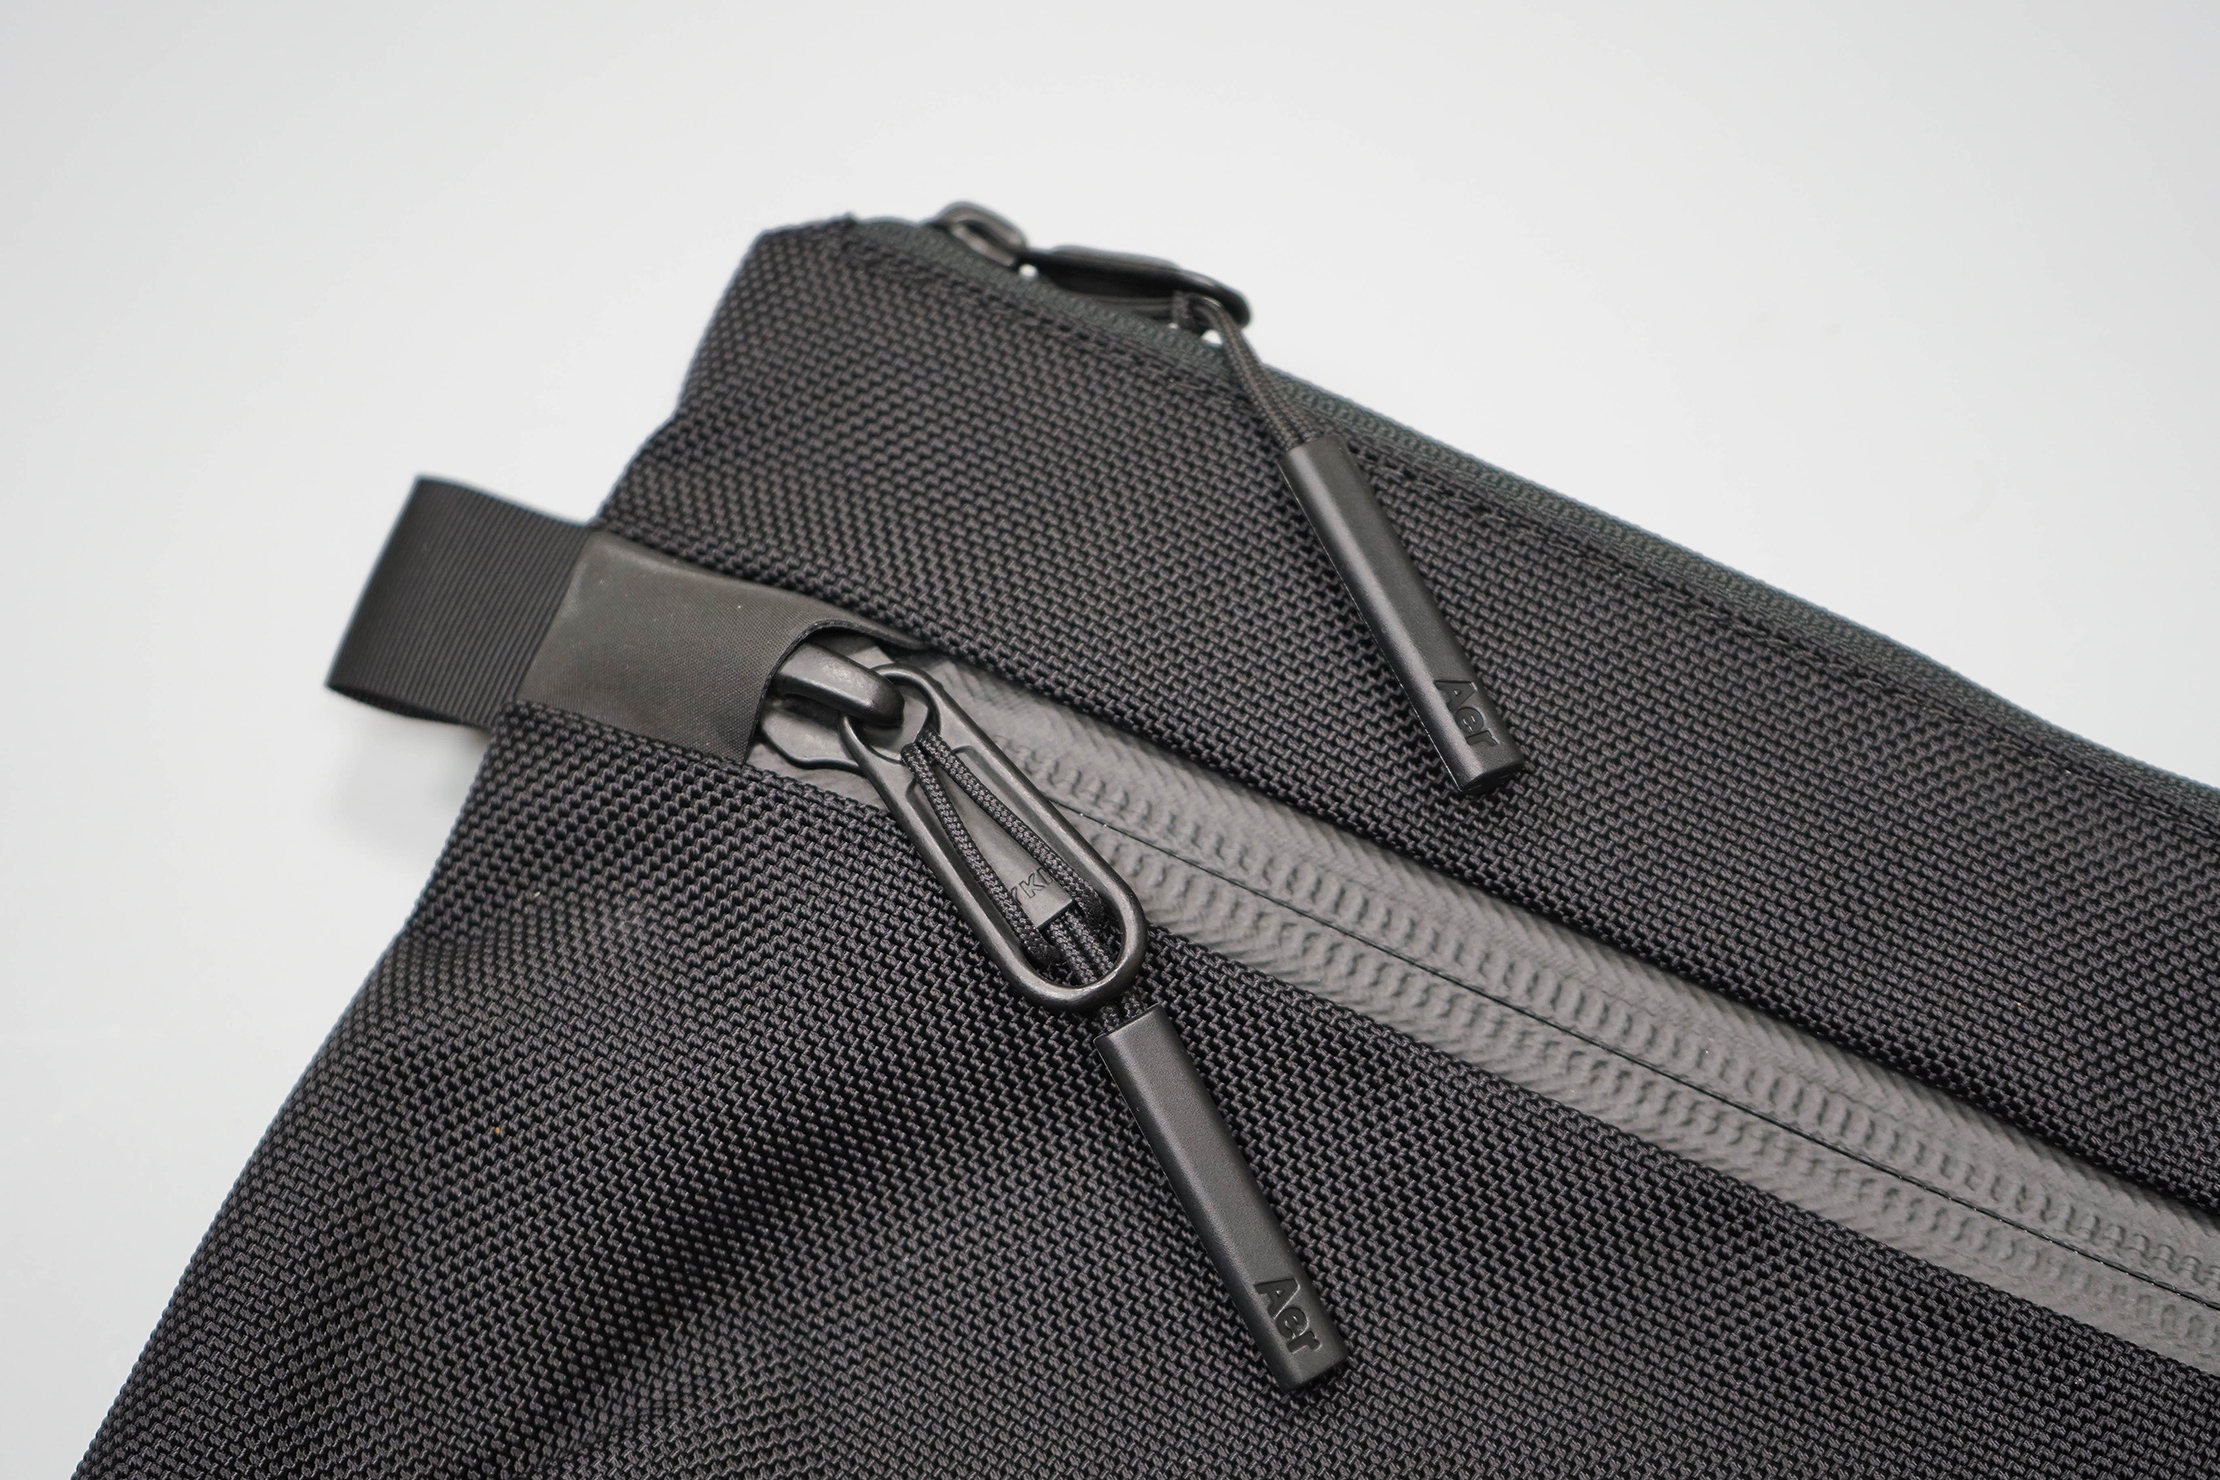 Aer Sling Pouch Zippers